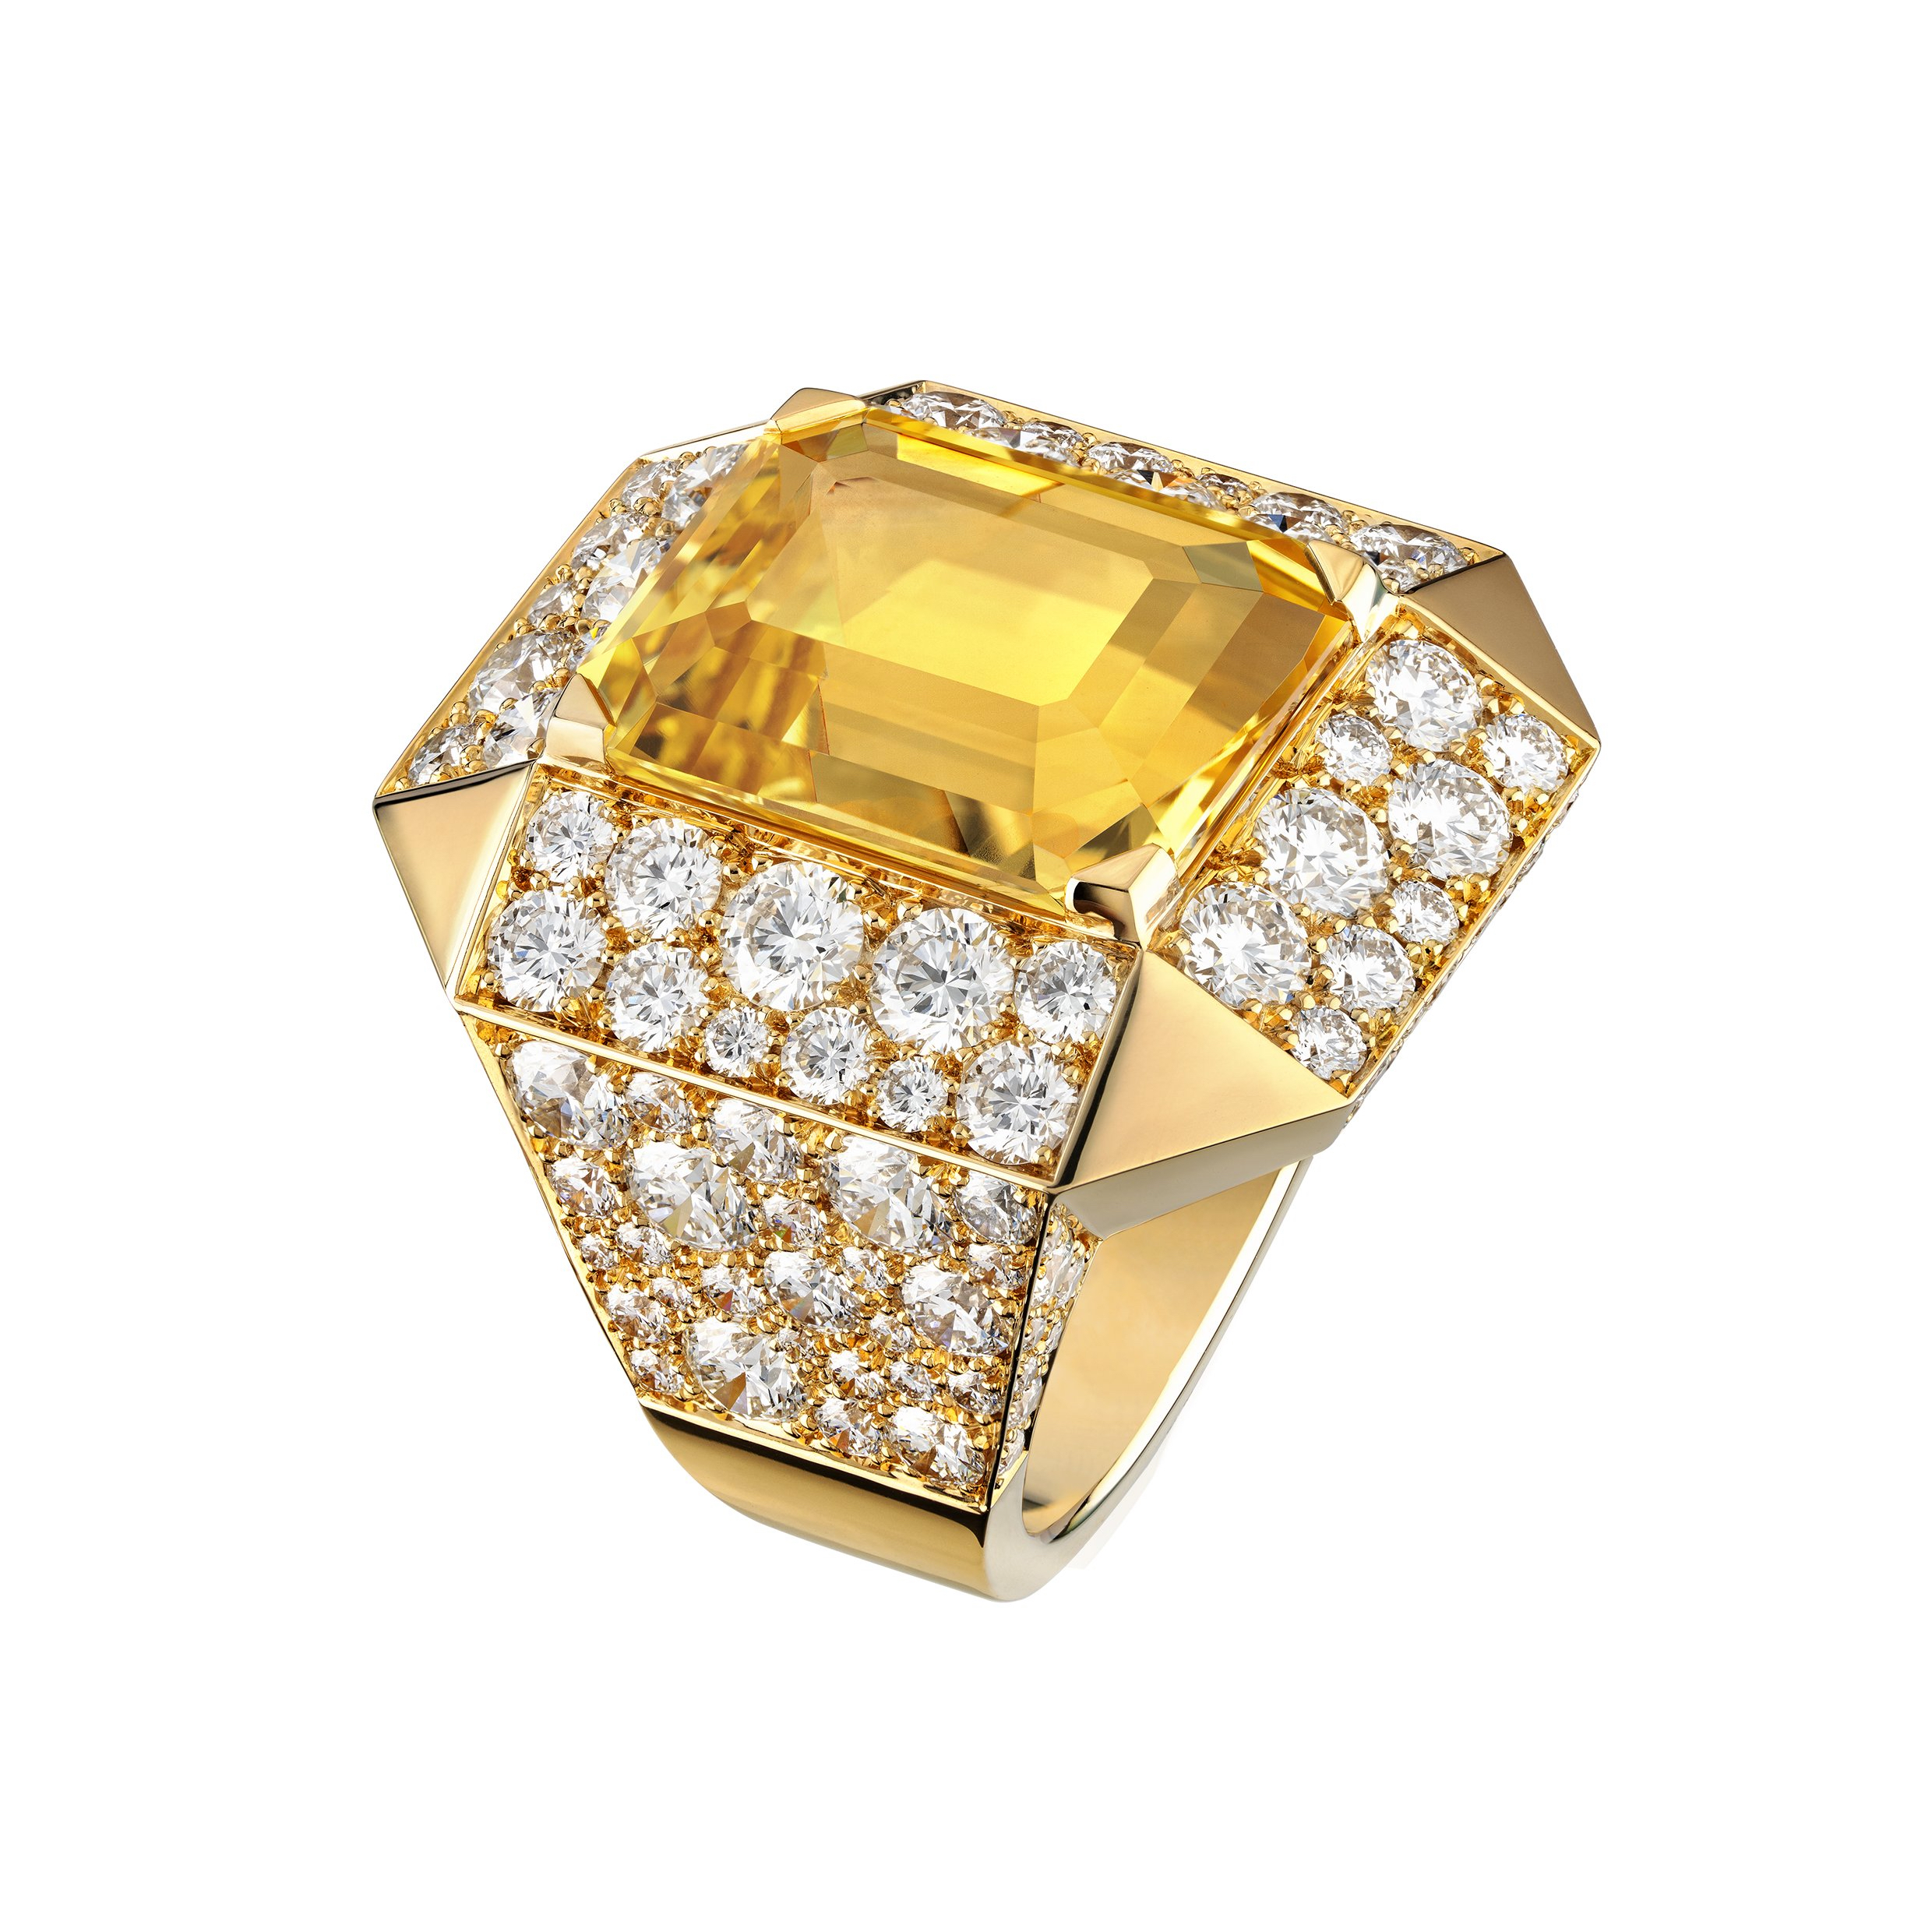 Chanel's Bague Cambon